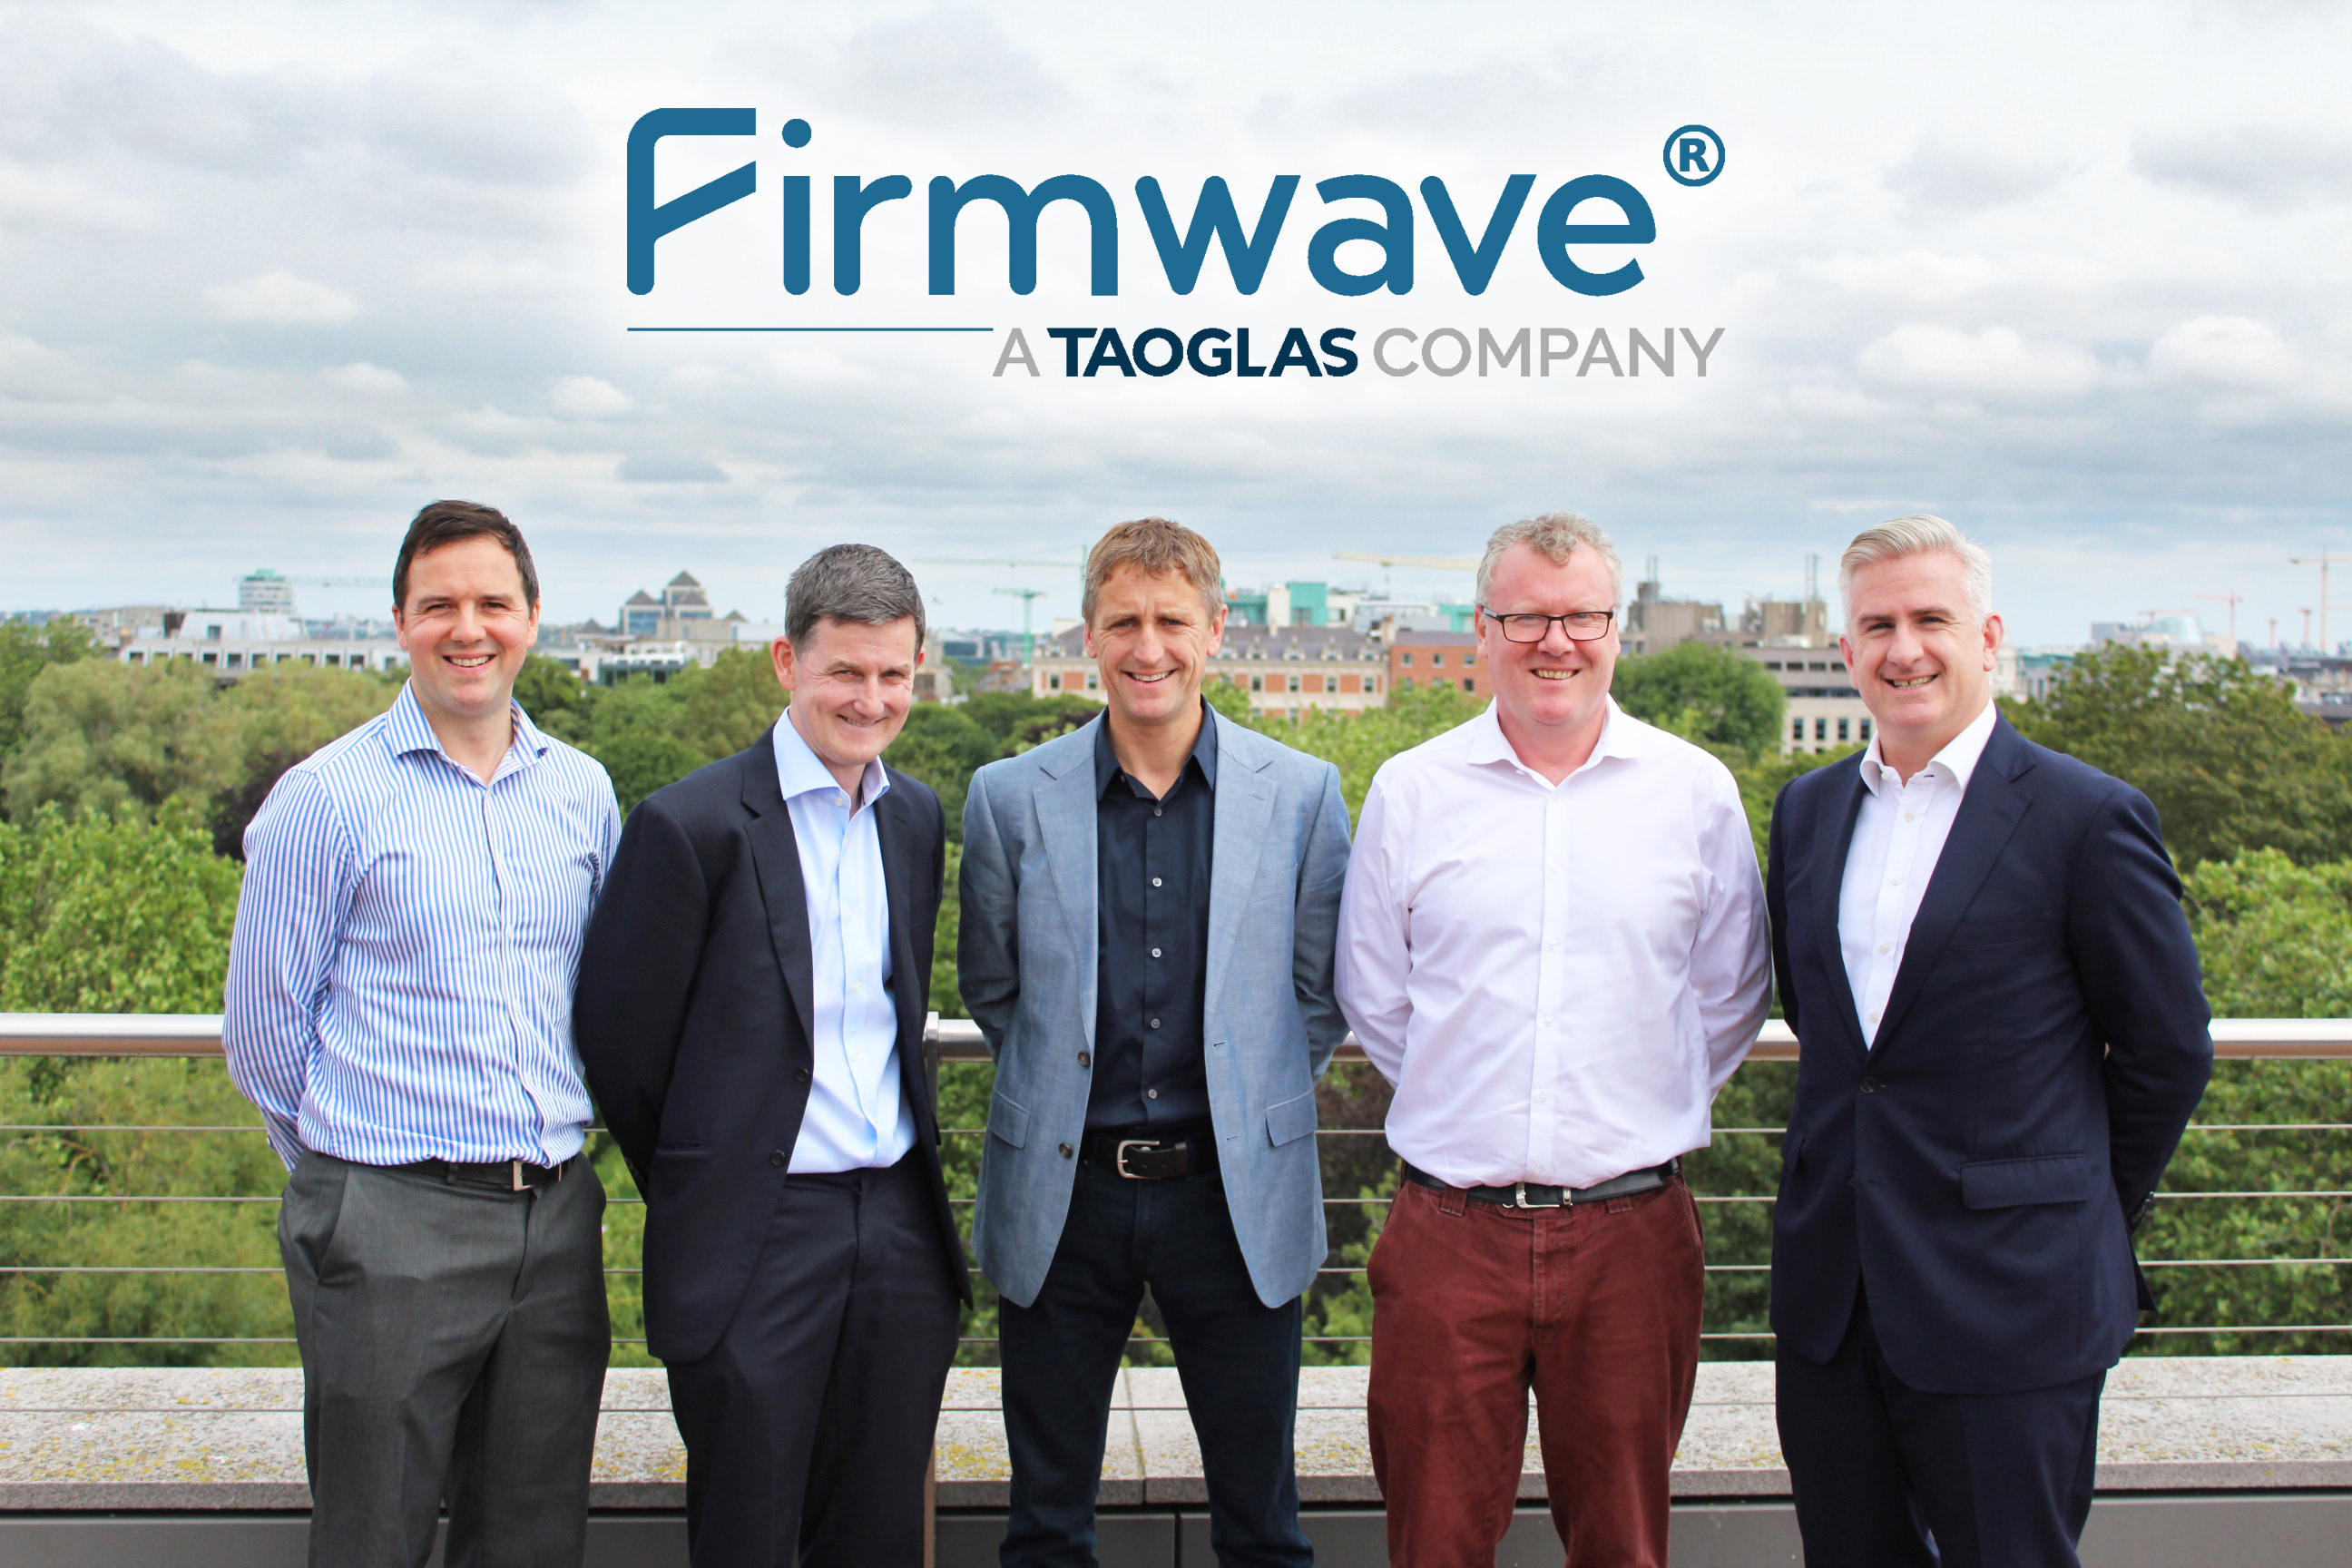 Taoglas Acquires Firmwave to Enable Next Generation IoT 1